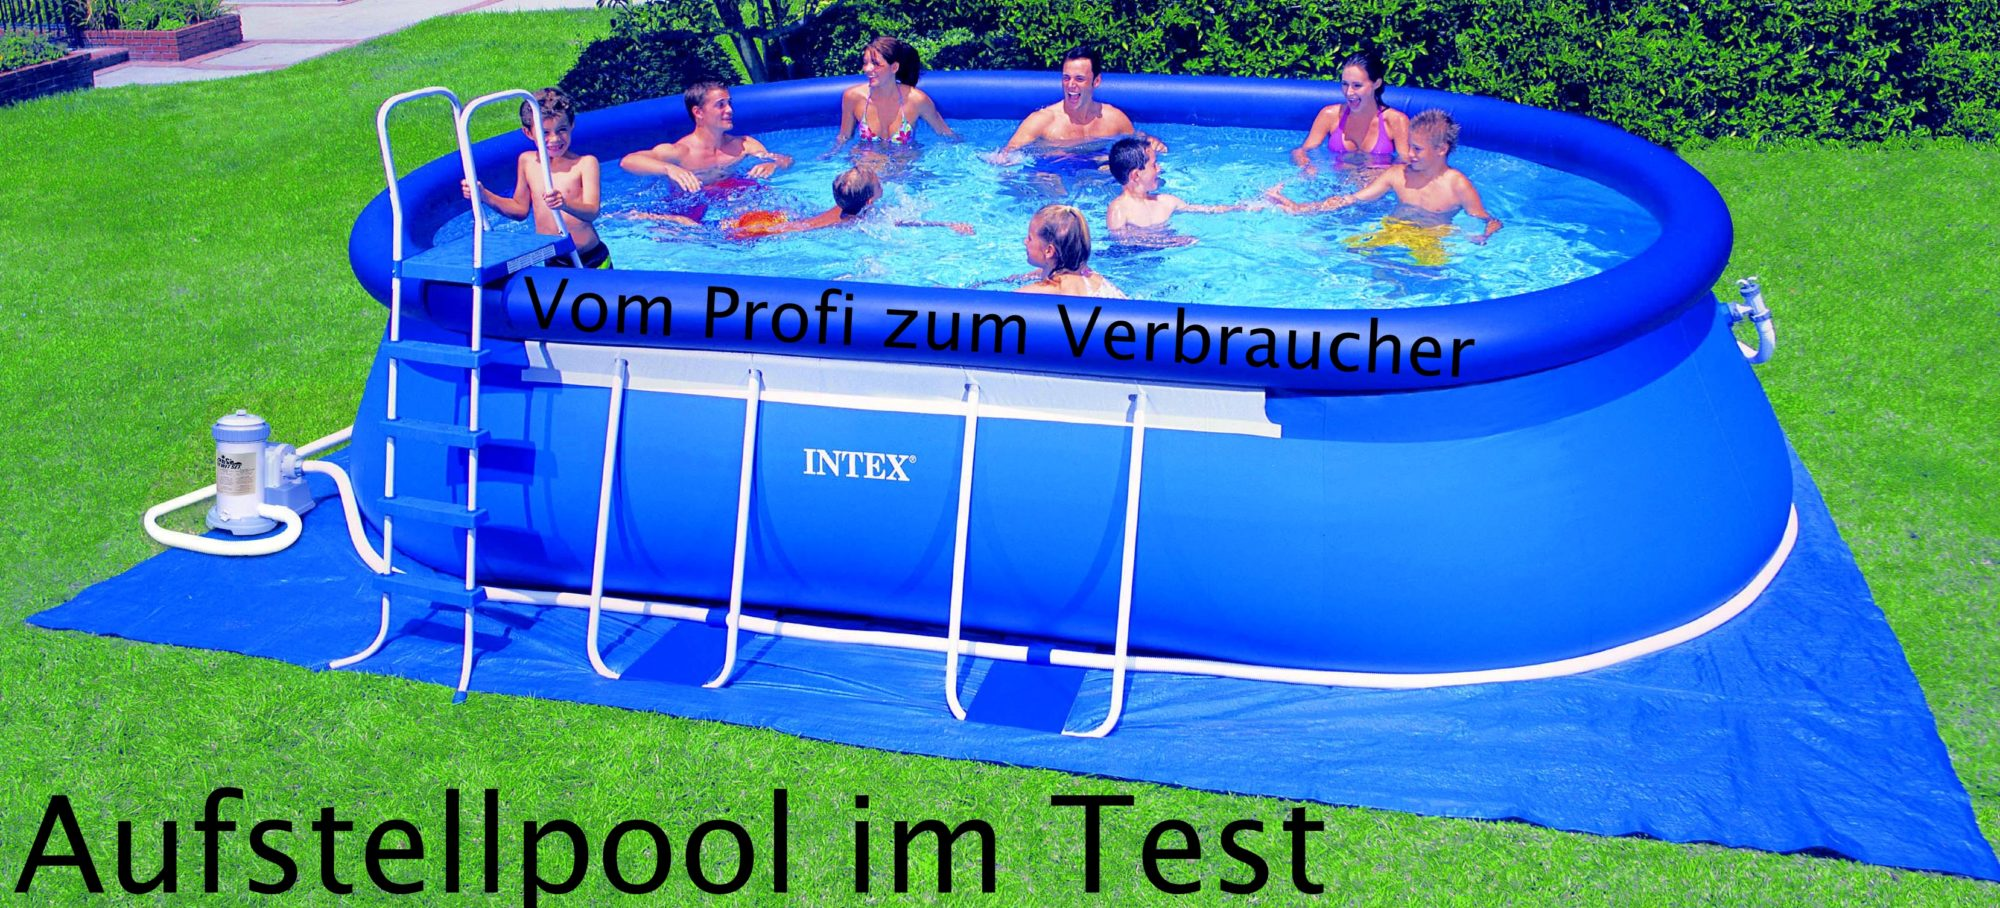 intex aufstellpool frame pool set rondo testbericht aufstellpool. Black Bedroom Furniture Sets. Home Design Ideas